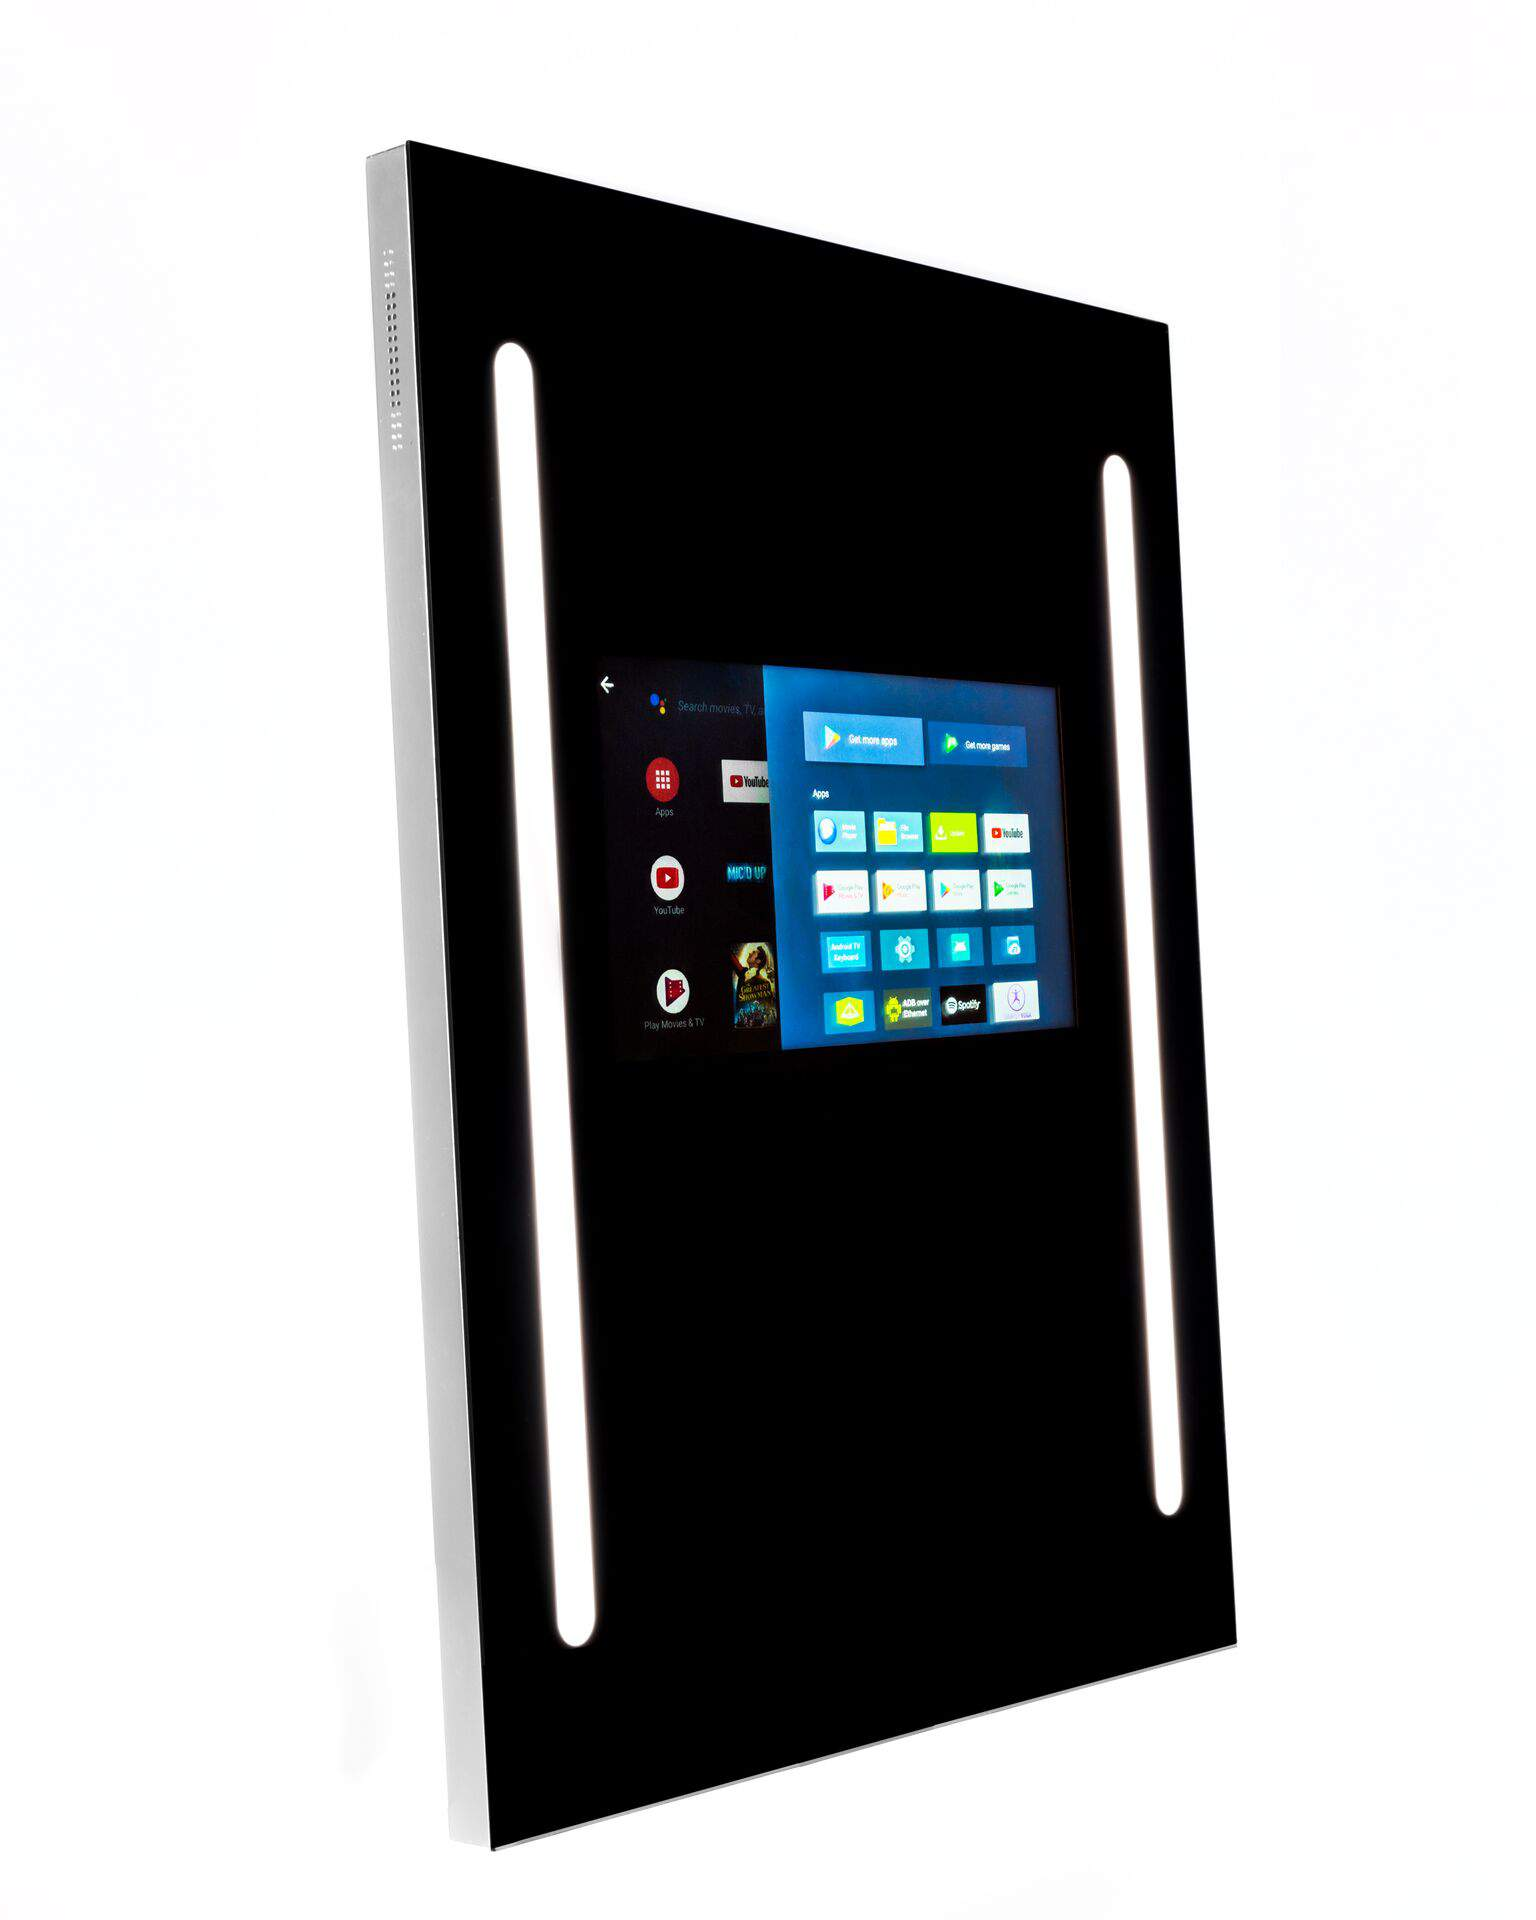 Capstone Connected Home Smart Mirror CES 2019 2